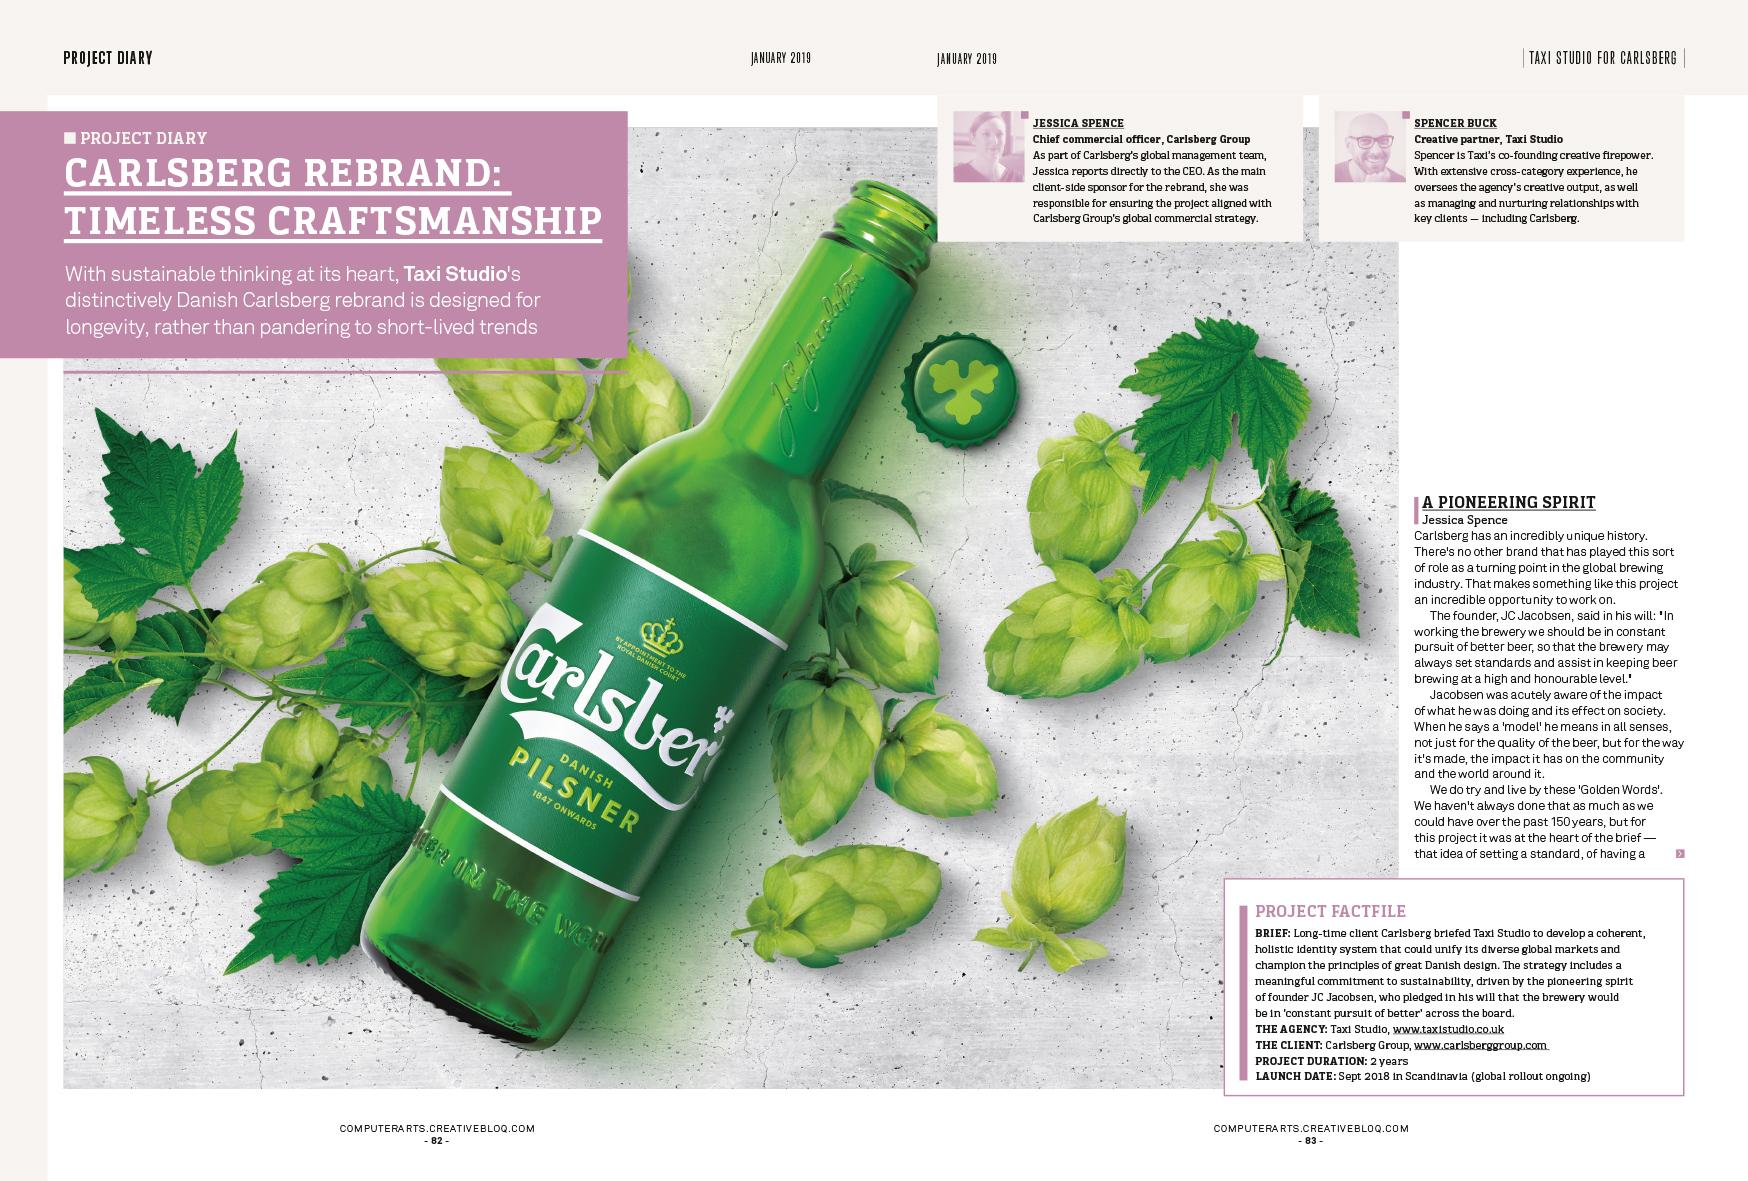 How Taxi Studio rebranded Carlsberg with a distinctively Danish design